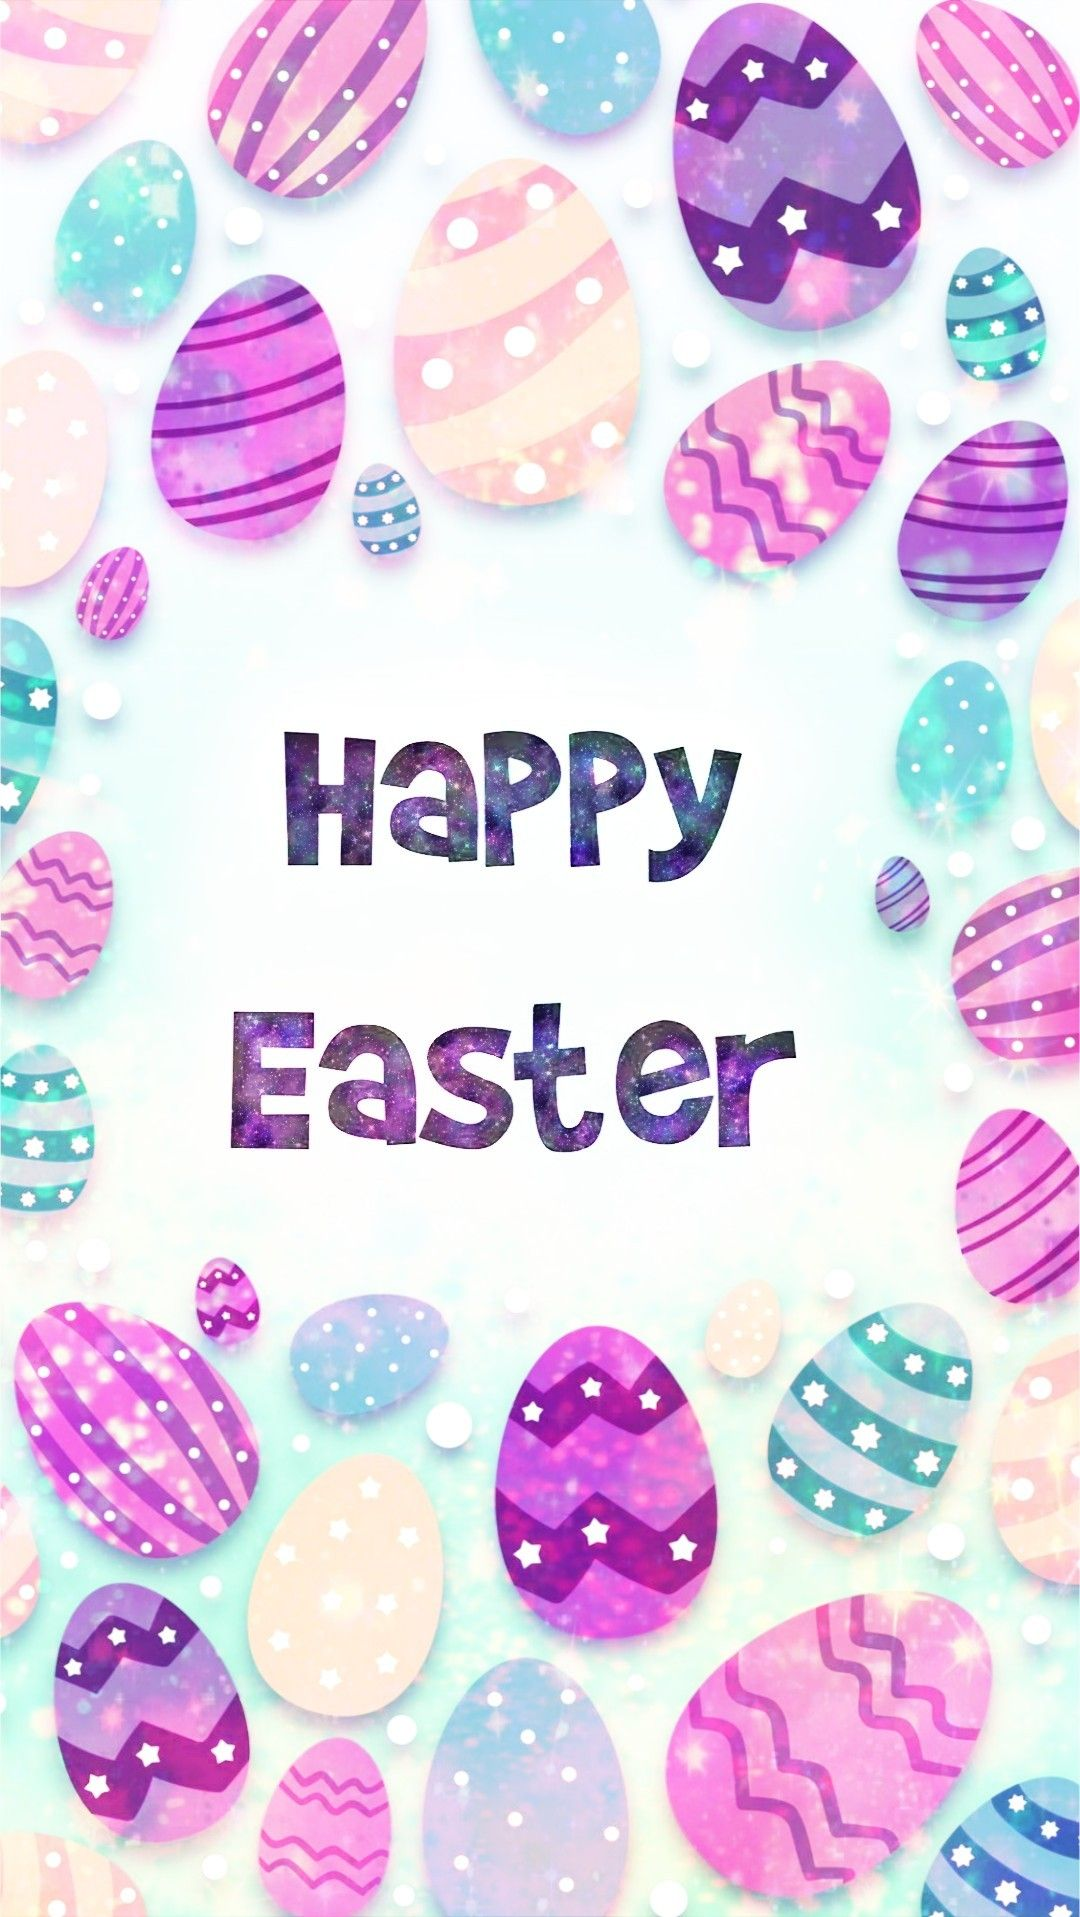 Glittery Happy Easter Made By Me Patterns Purple Glitter